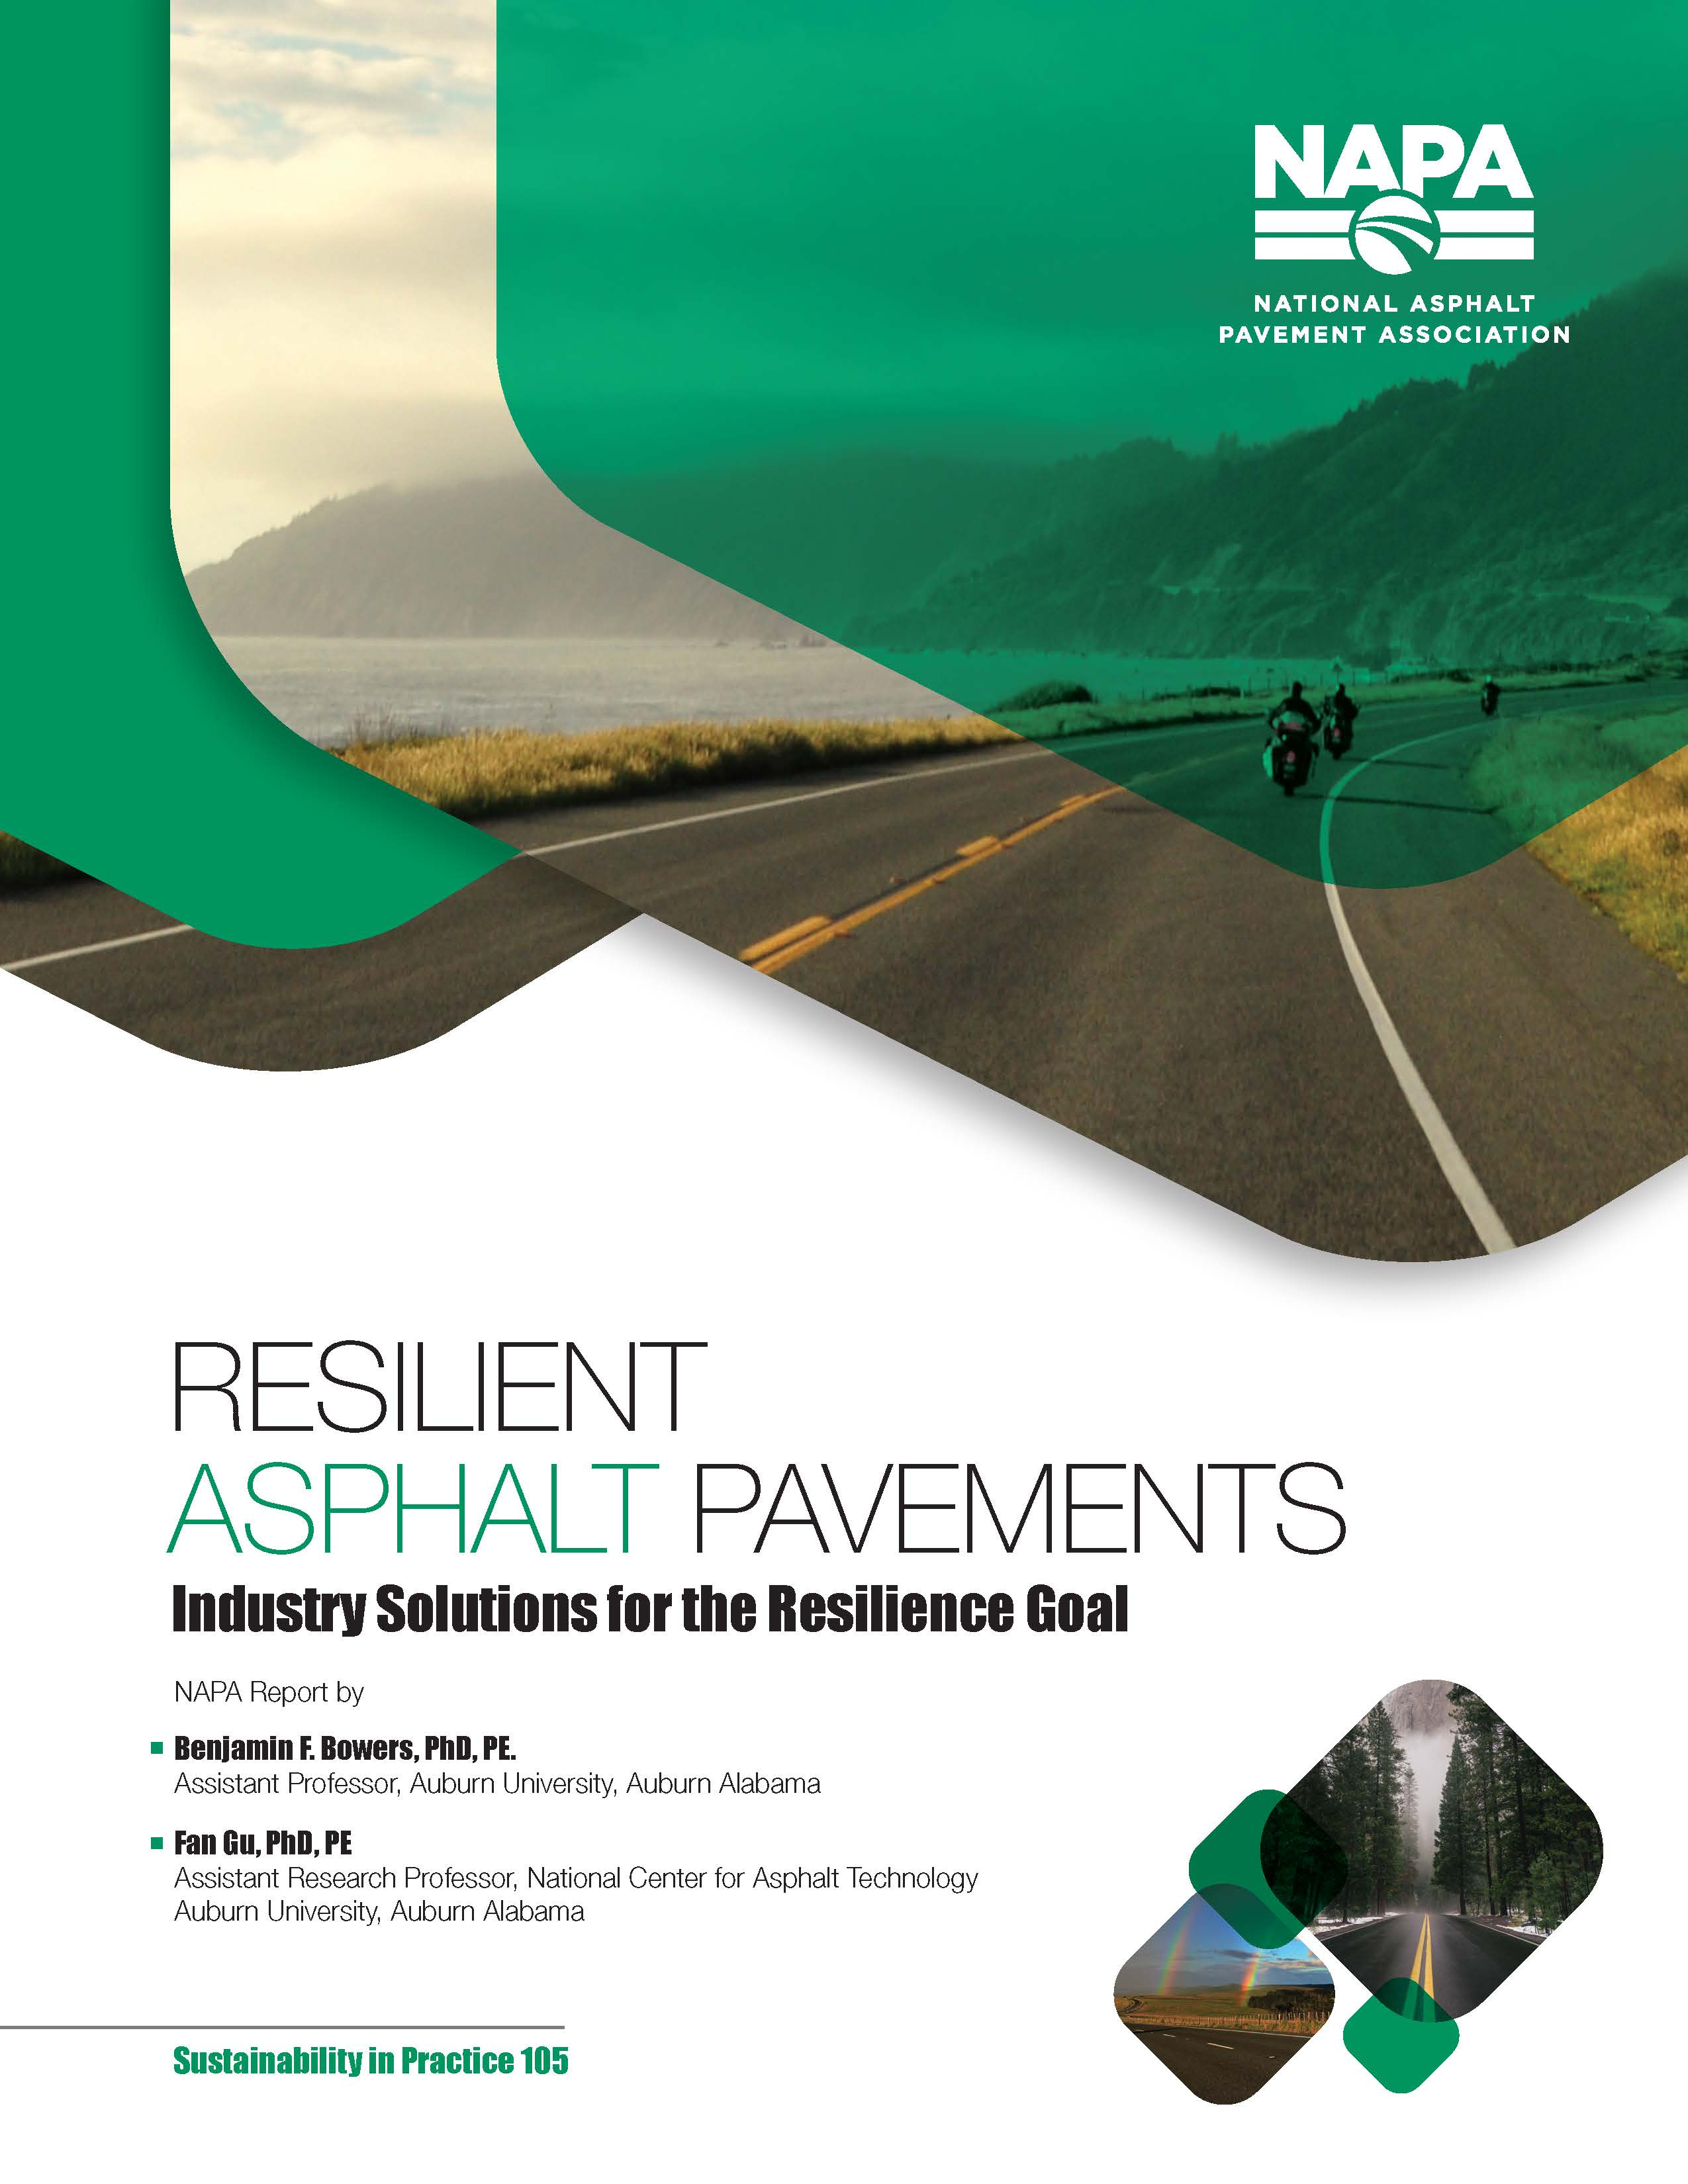 Resilient Asphalt Pavements: Industry Solutions for the Resilience Goal